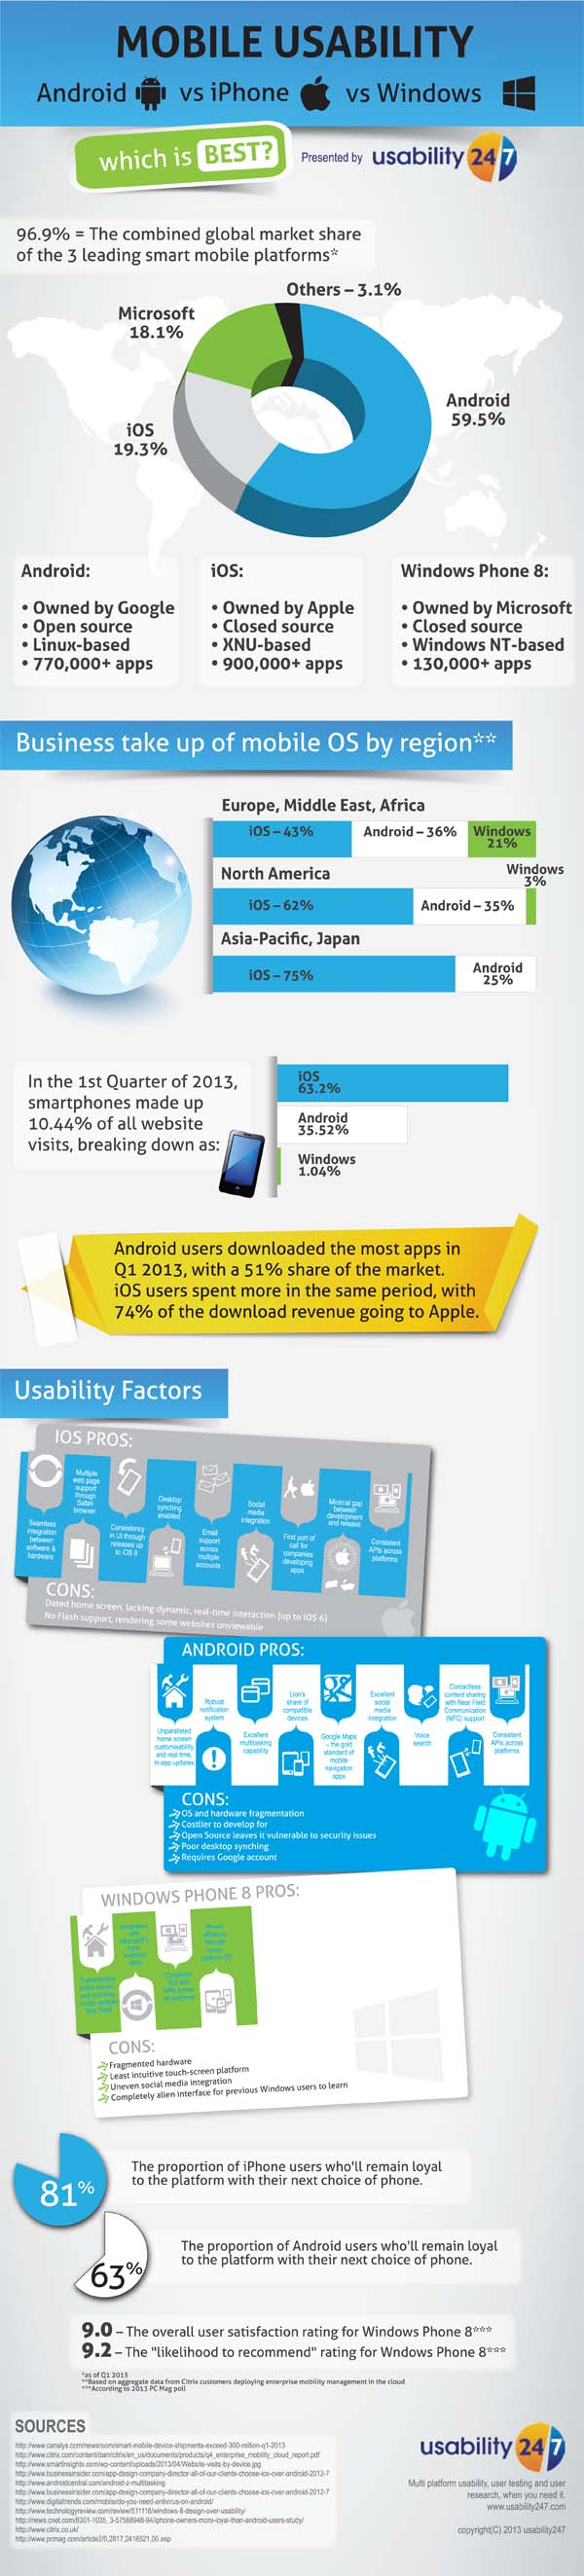 14. Smartphone-usability-Android-vs-iPhone-vs-Windows-600